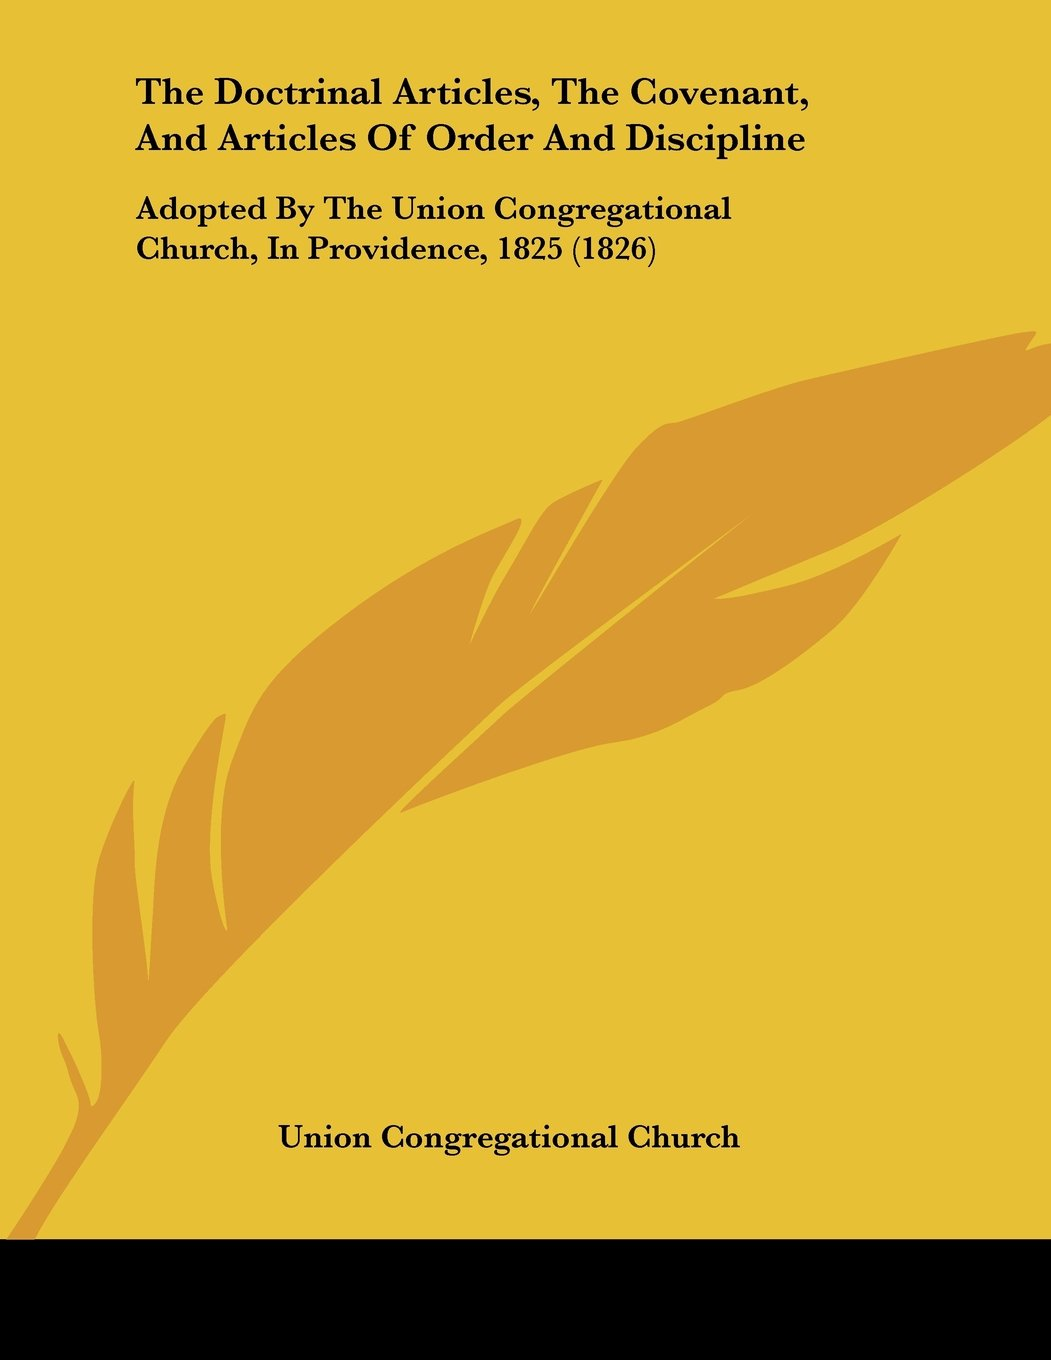 Download The Doctrinal Articles, The Covenant, And Articles Of Order And Discipline: Adopted By The Union Congregational Church, In Providence, 1825 (1826) PDF